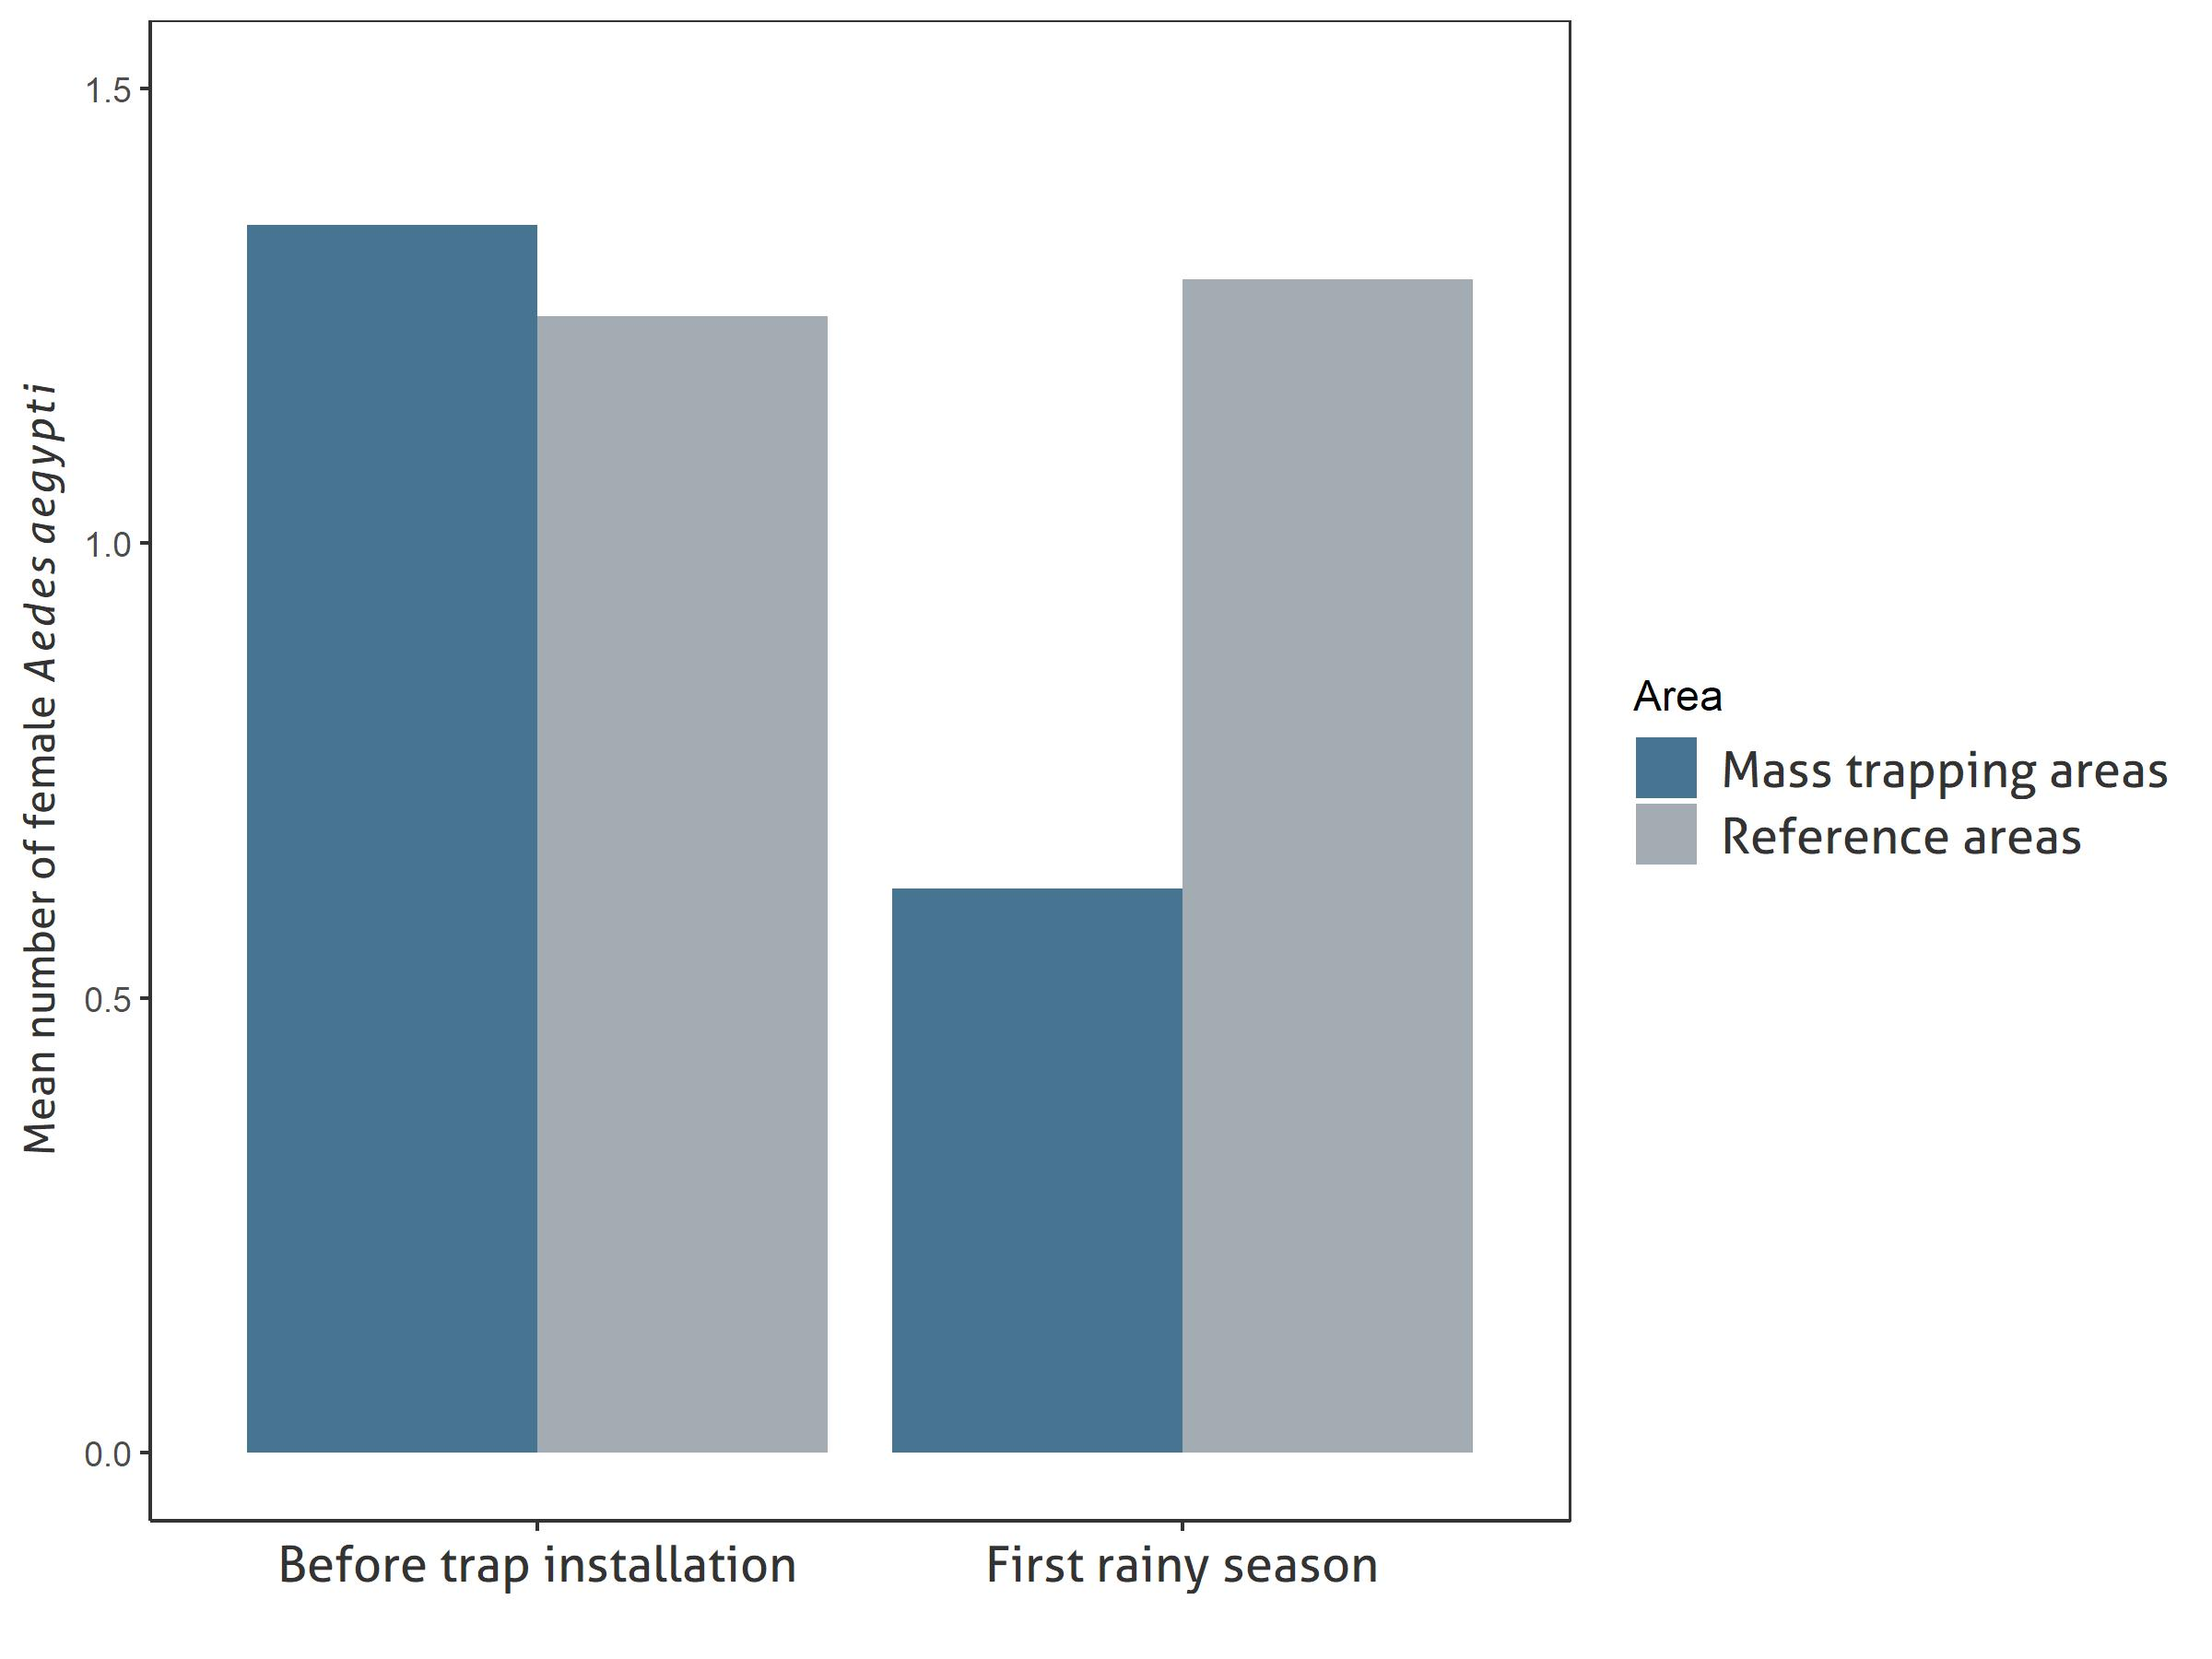 Comparison of mean numbers of collected female Aedes aegypti in monitoring traps in six mass trapping areas and six reference areas (areas without trapping intervention) before trap installation and during the first rainy season of the long-term study.